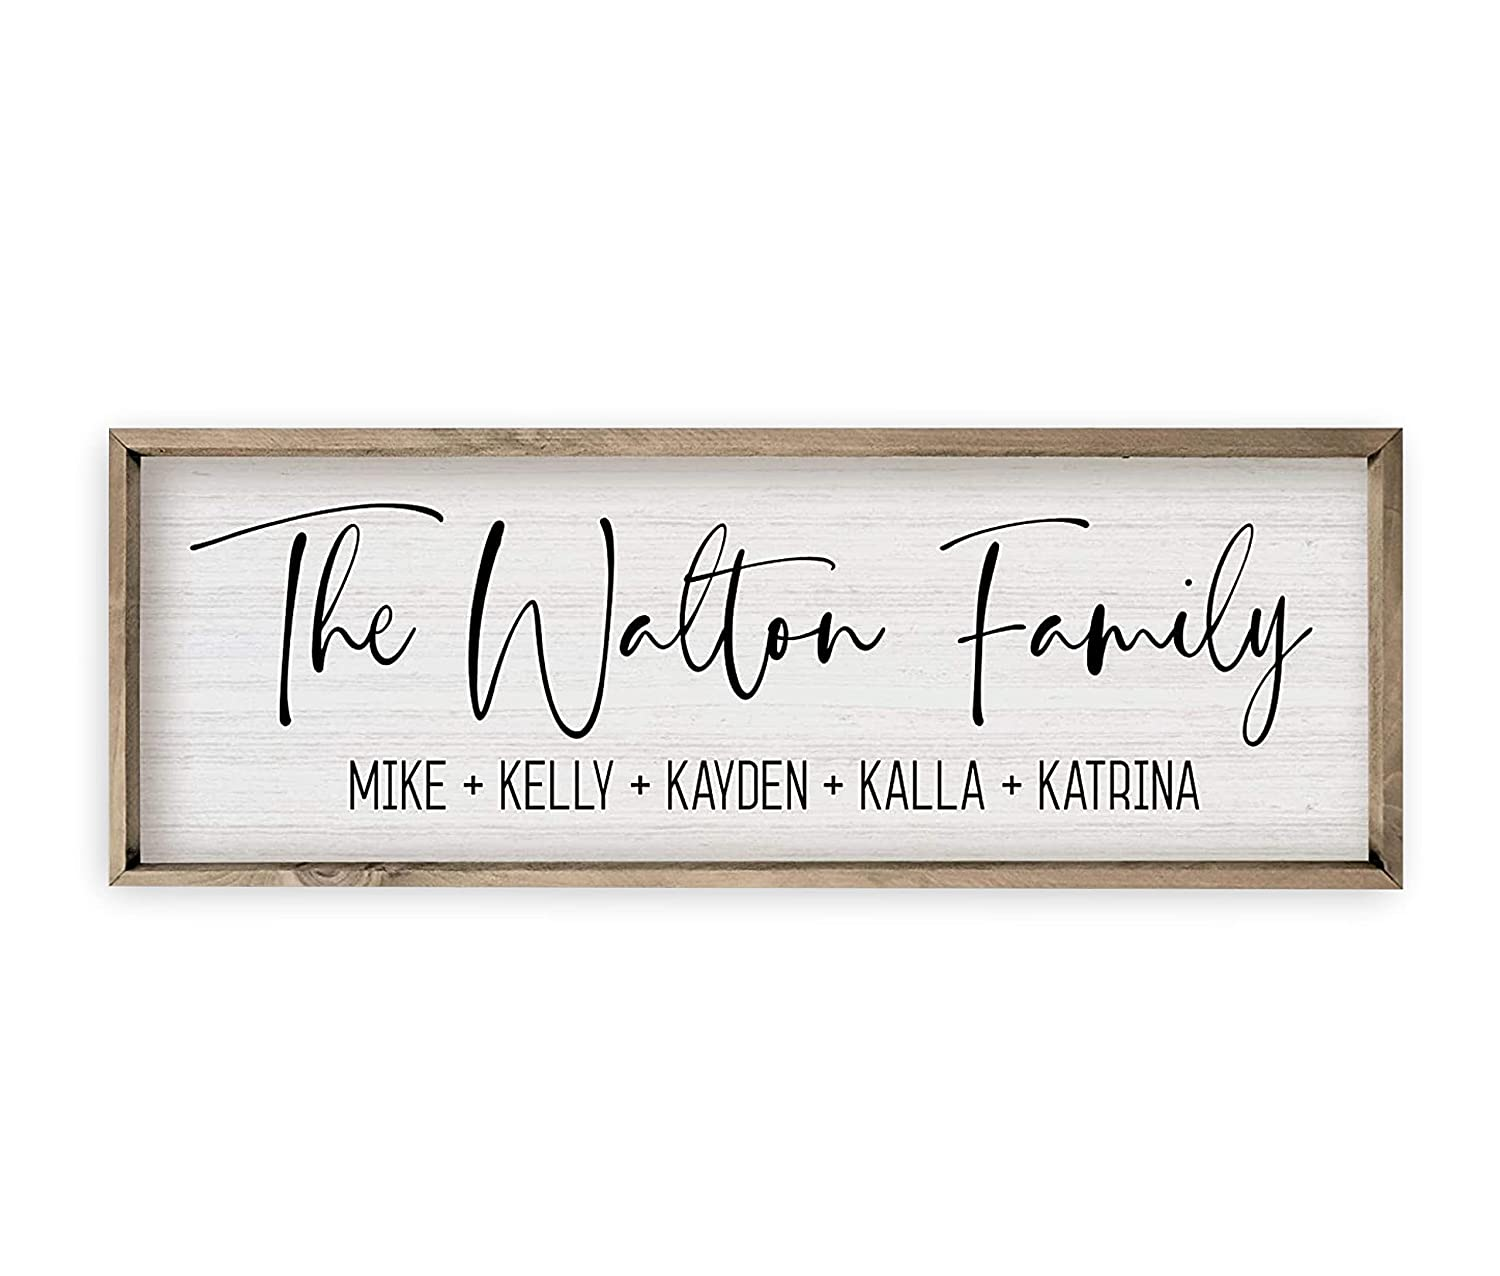 Personalized Framed Wooden Family Name Sign